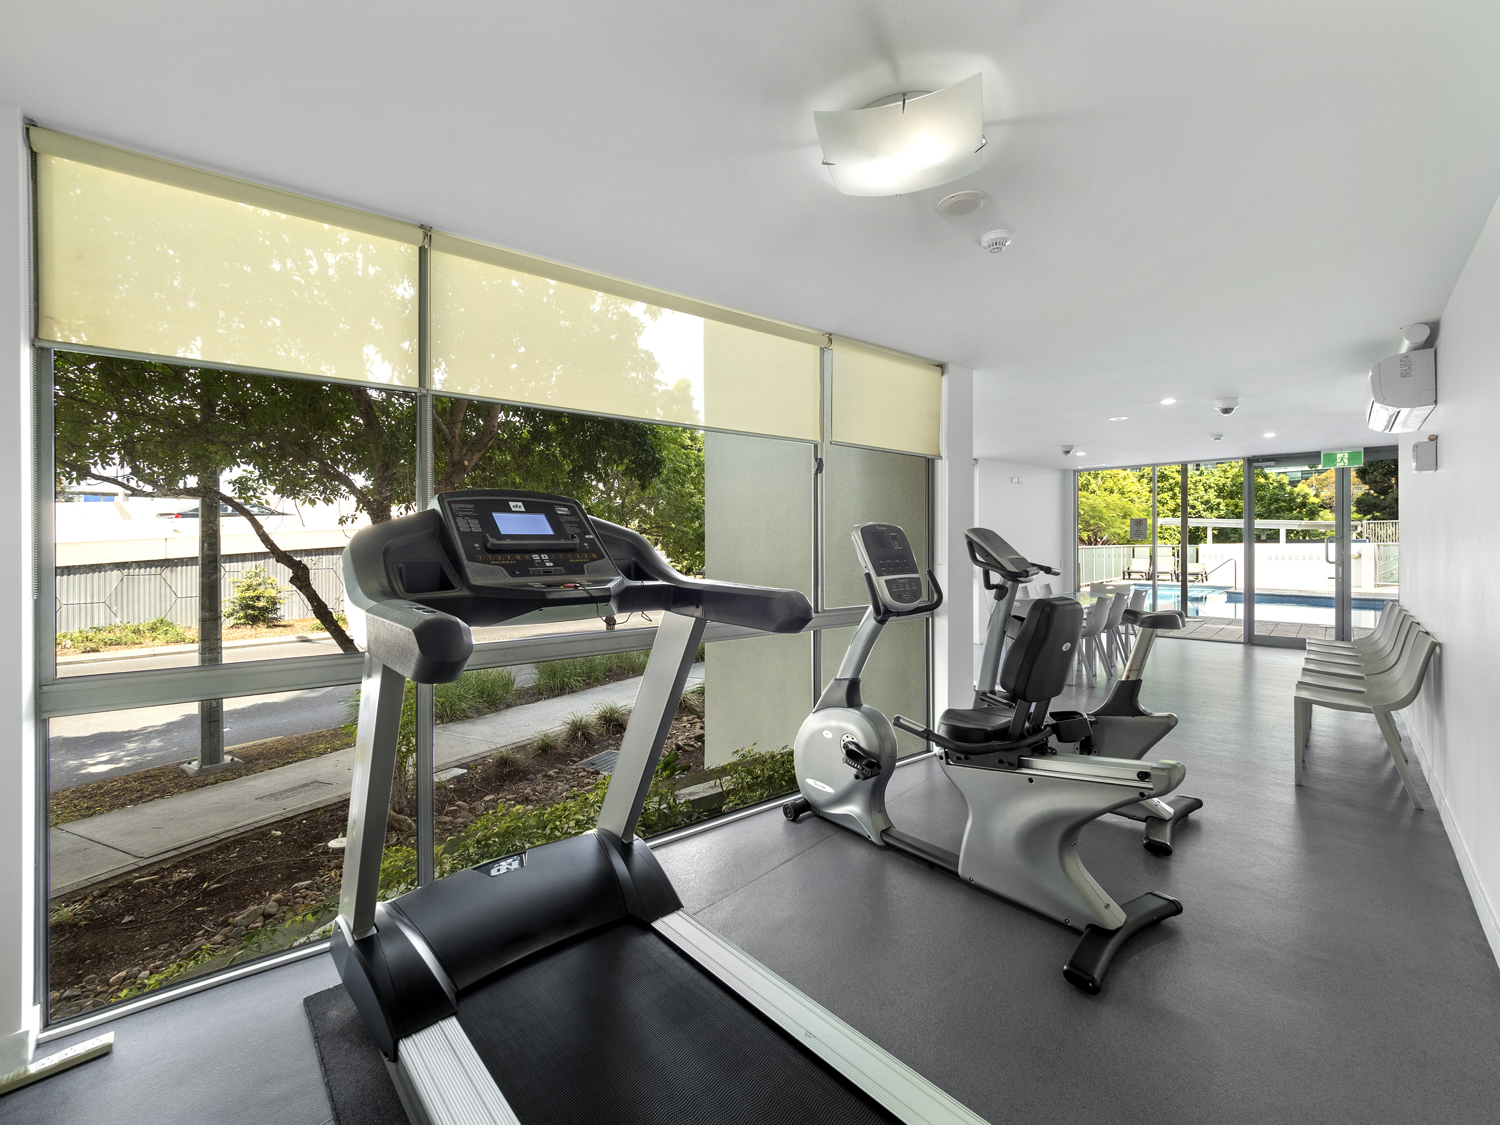 The gym - Photographing an apartment for sale at 92 Quay St South Brisbane